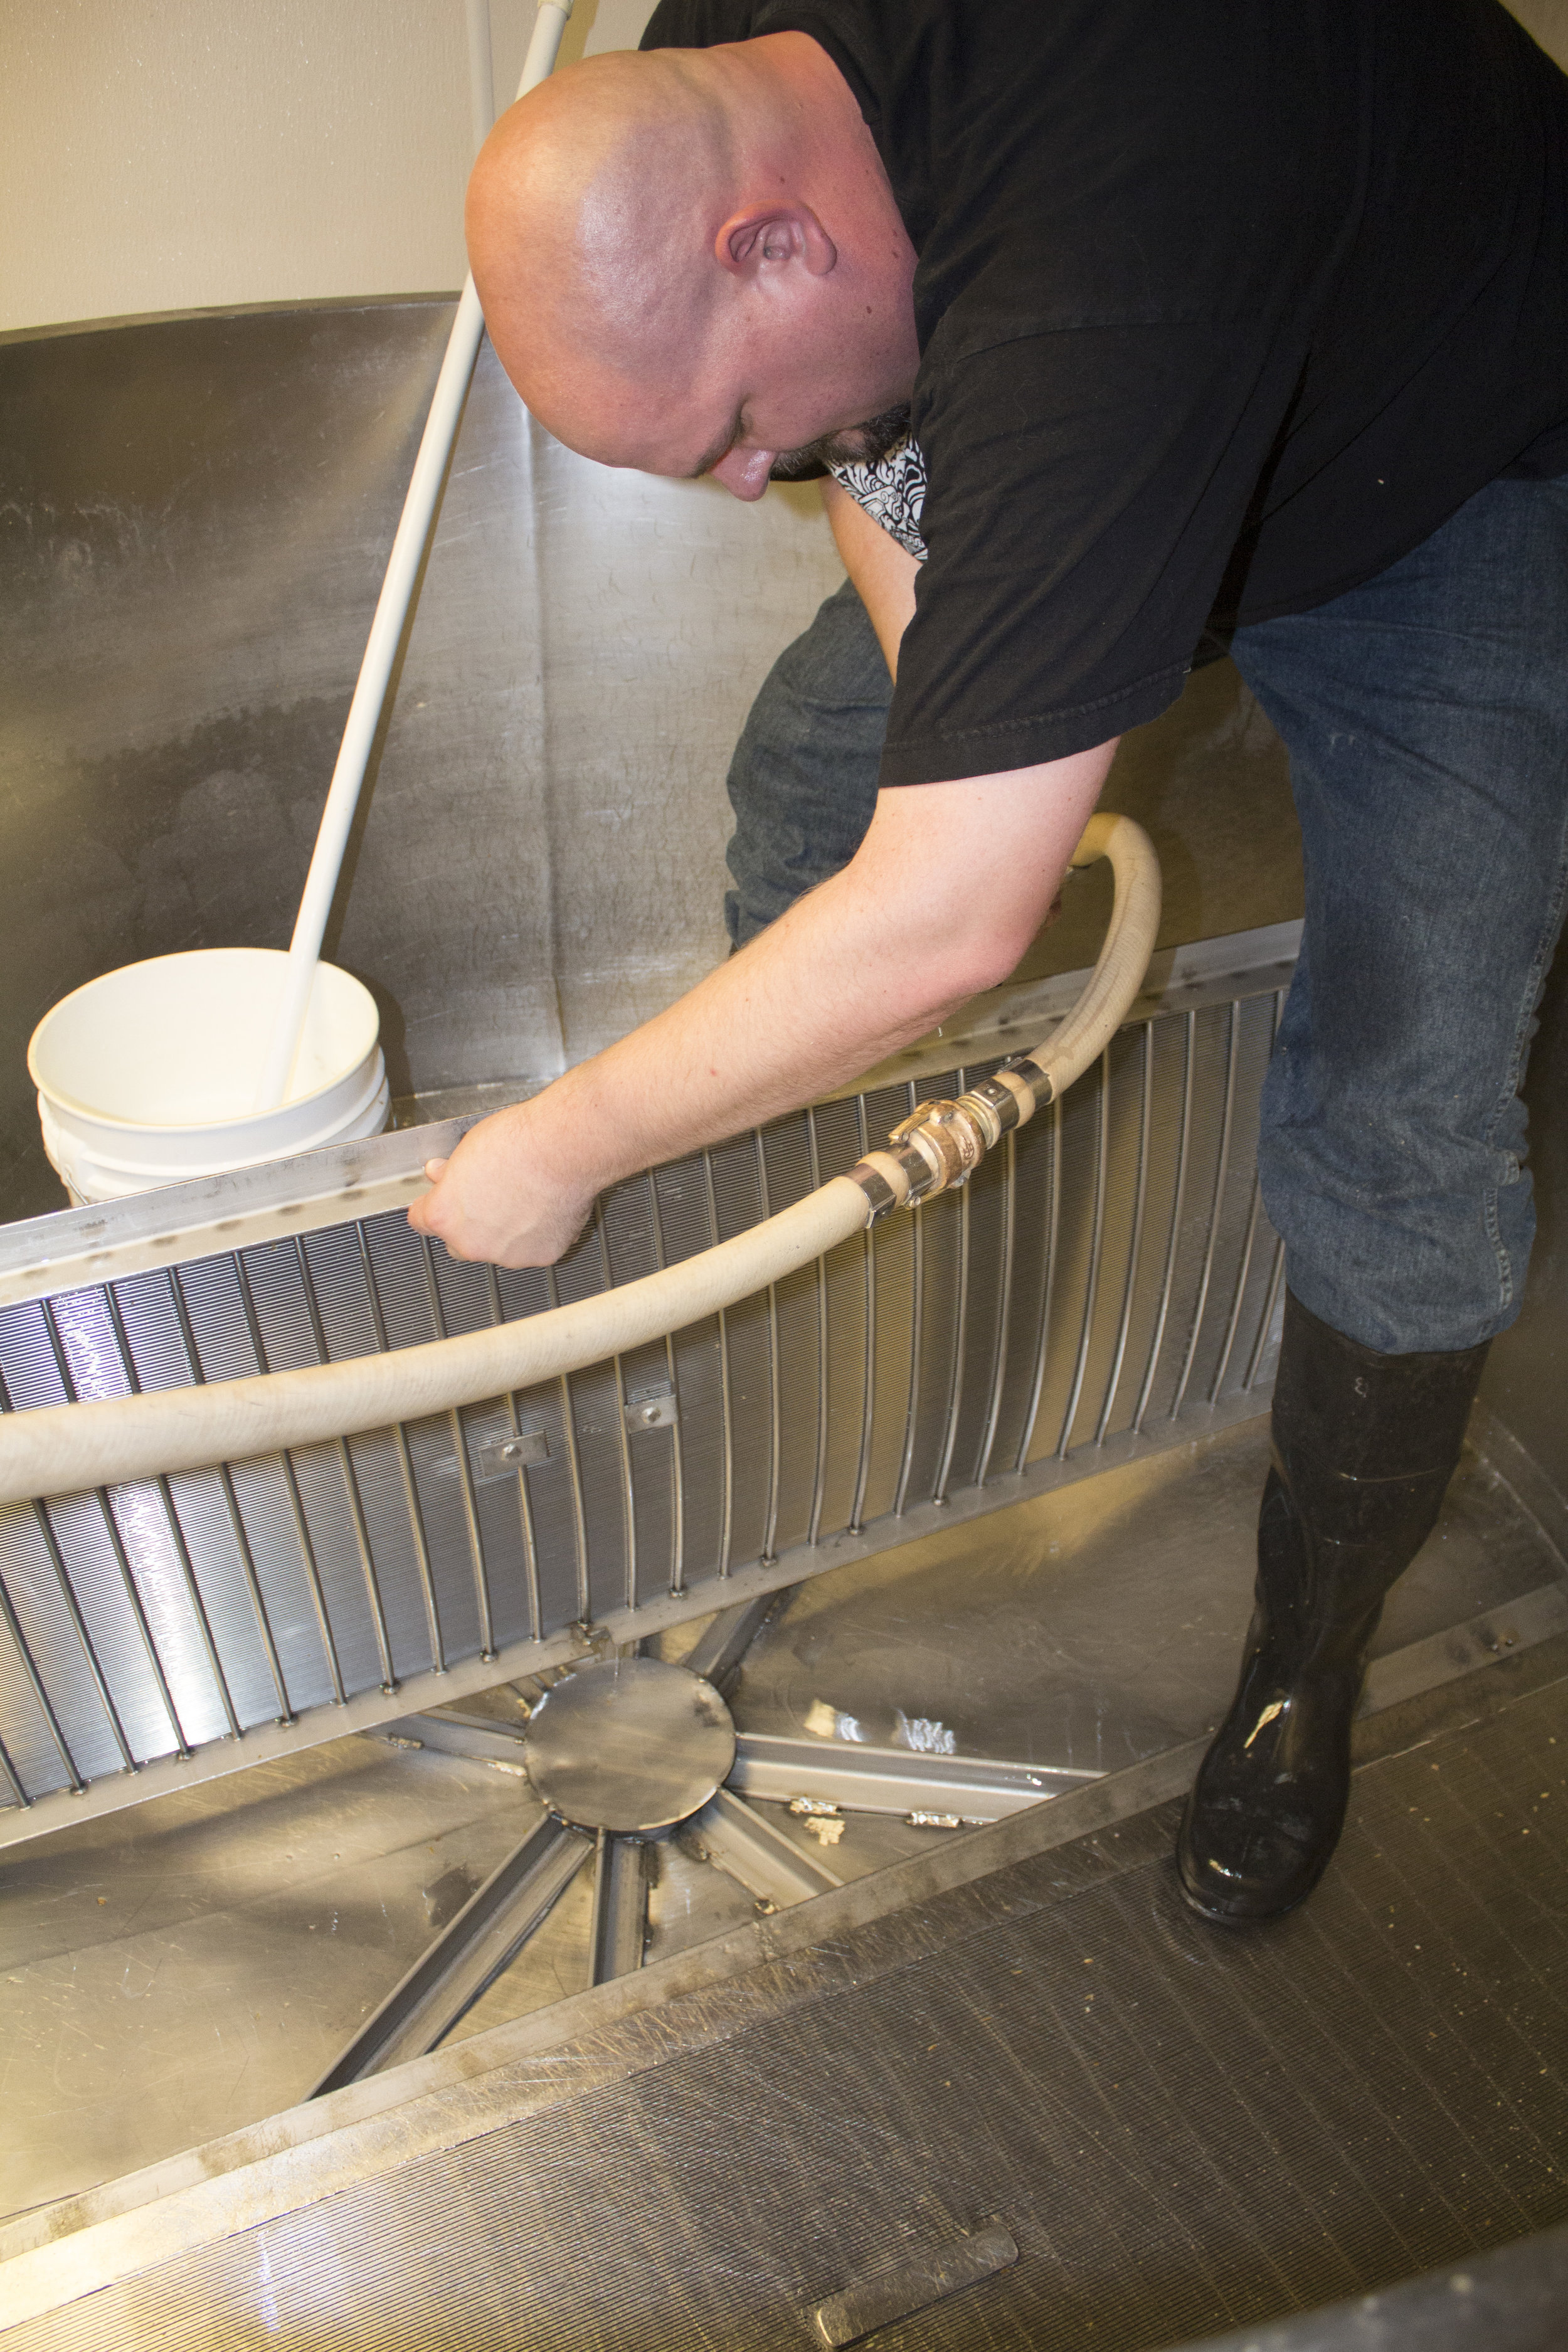 I'm not clear on how I ended up cleaning the mash tun, but I had a good time doing it. I only whacked my head on the grain chute once.